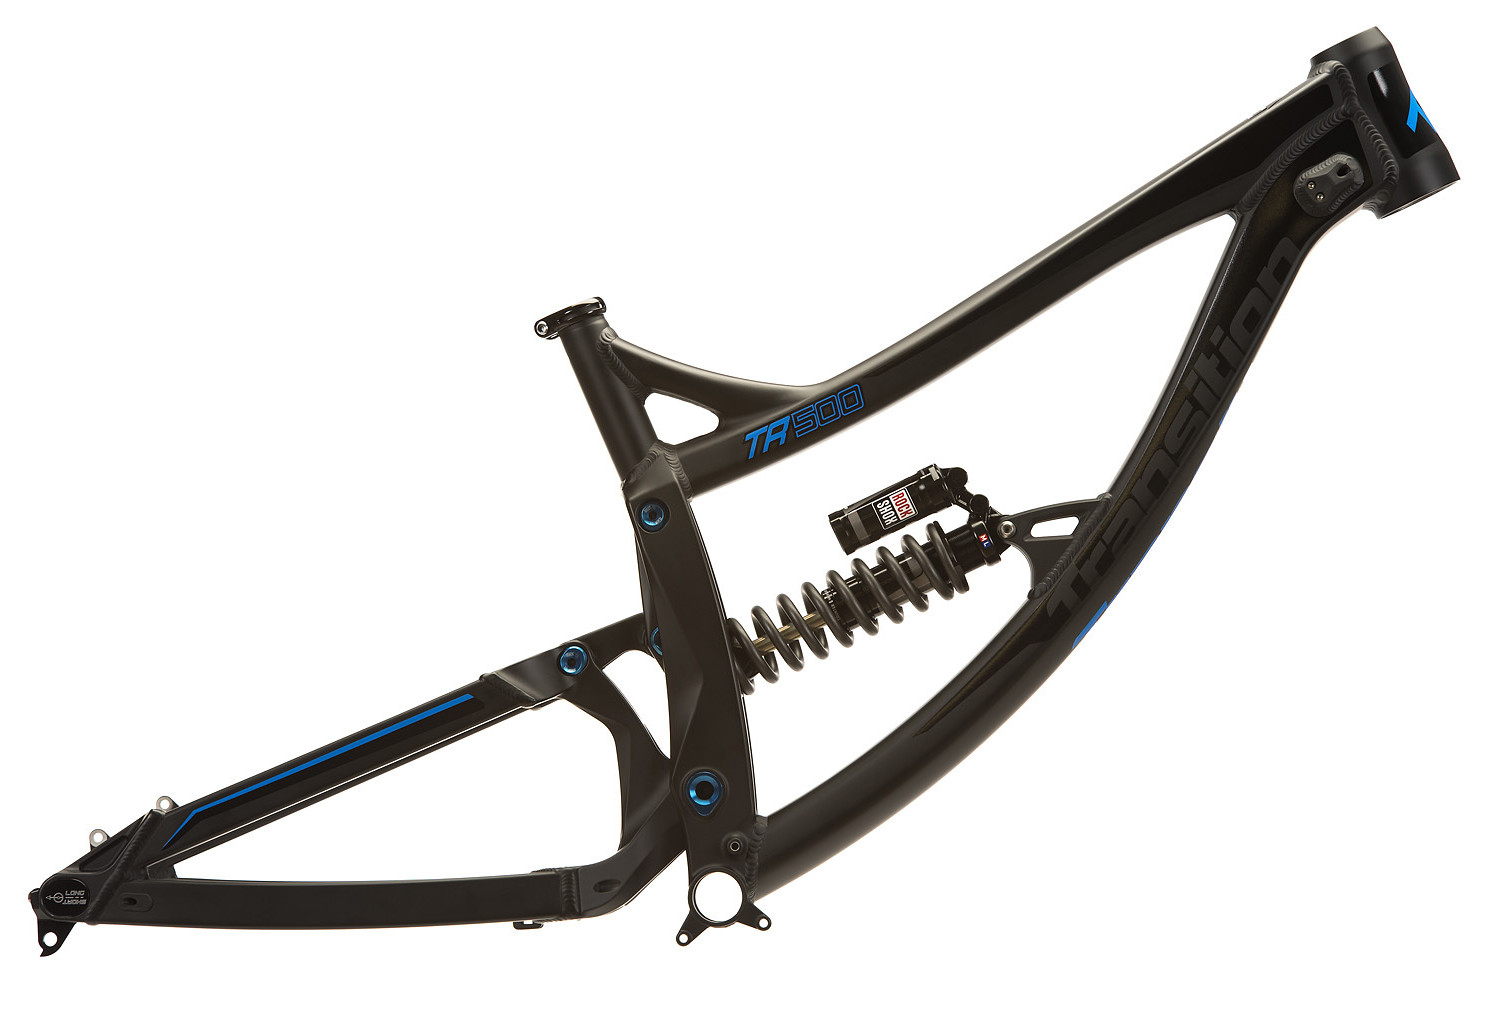 Transition TR500 with RockShox Vivid RC Coil frame - Stealth Black